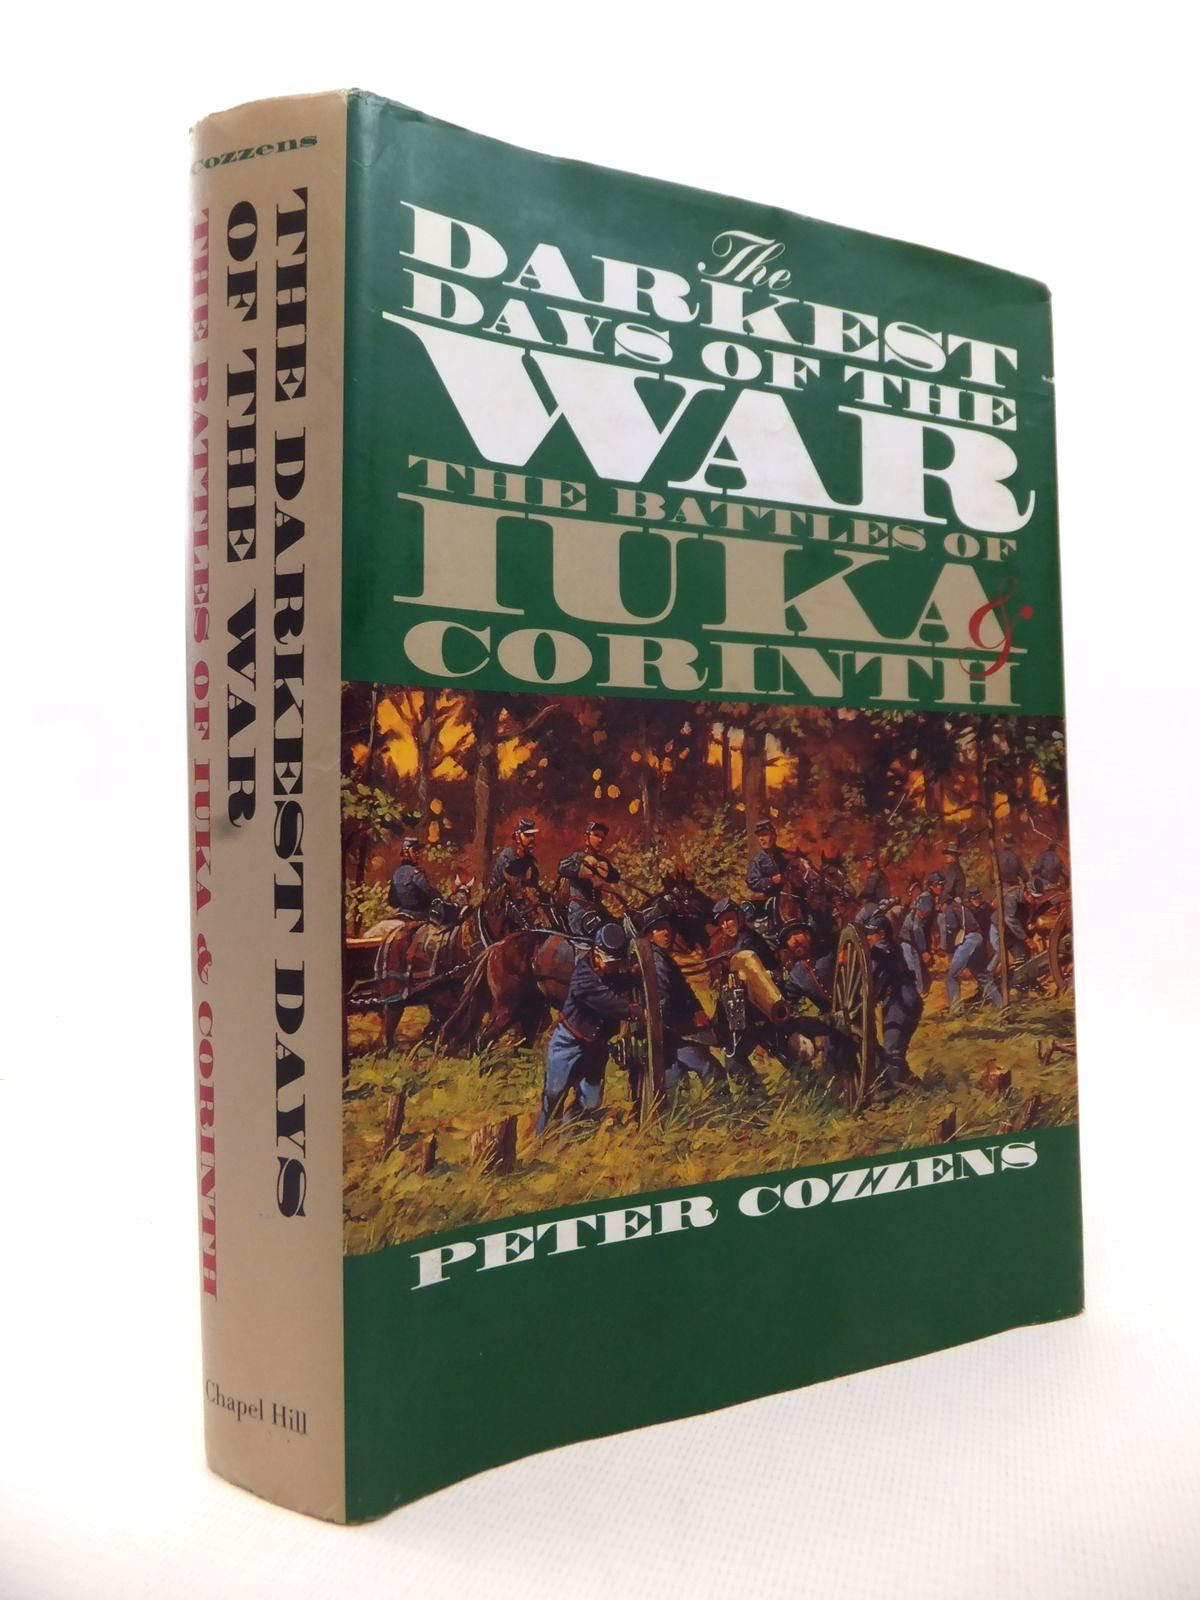 Photo of THE DARKEST DAYS OF THE WAR: THE BATTLES OF IUKA & CORINTH written by Cozzens, Peter published by University Of North Carolina Press, Chapel Hill (STOCK CODE: 1813631)  for sale by Stella & Rose's Books